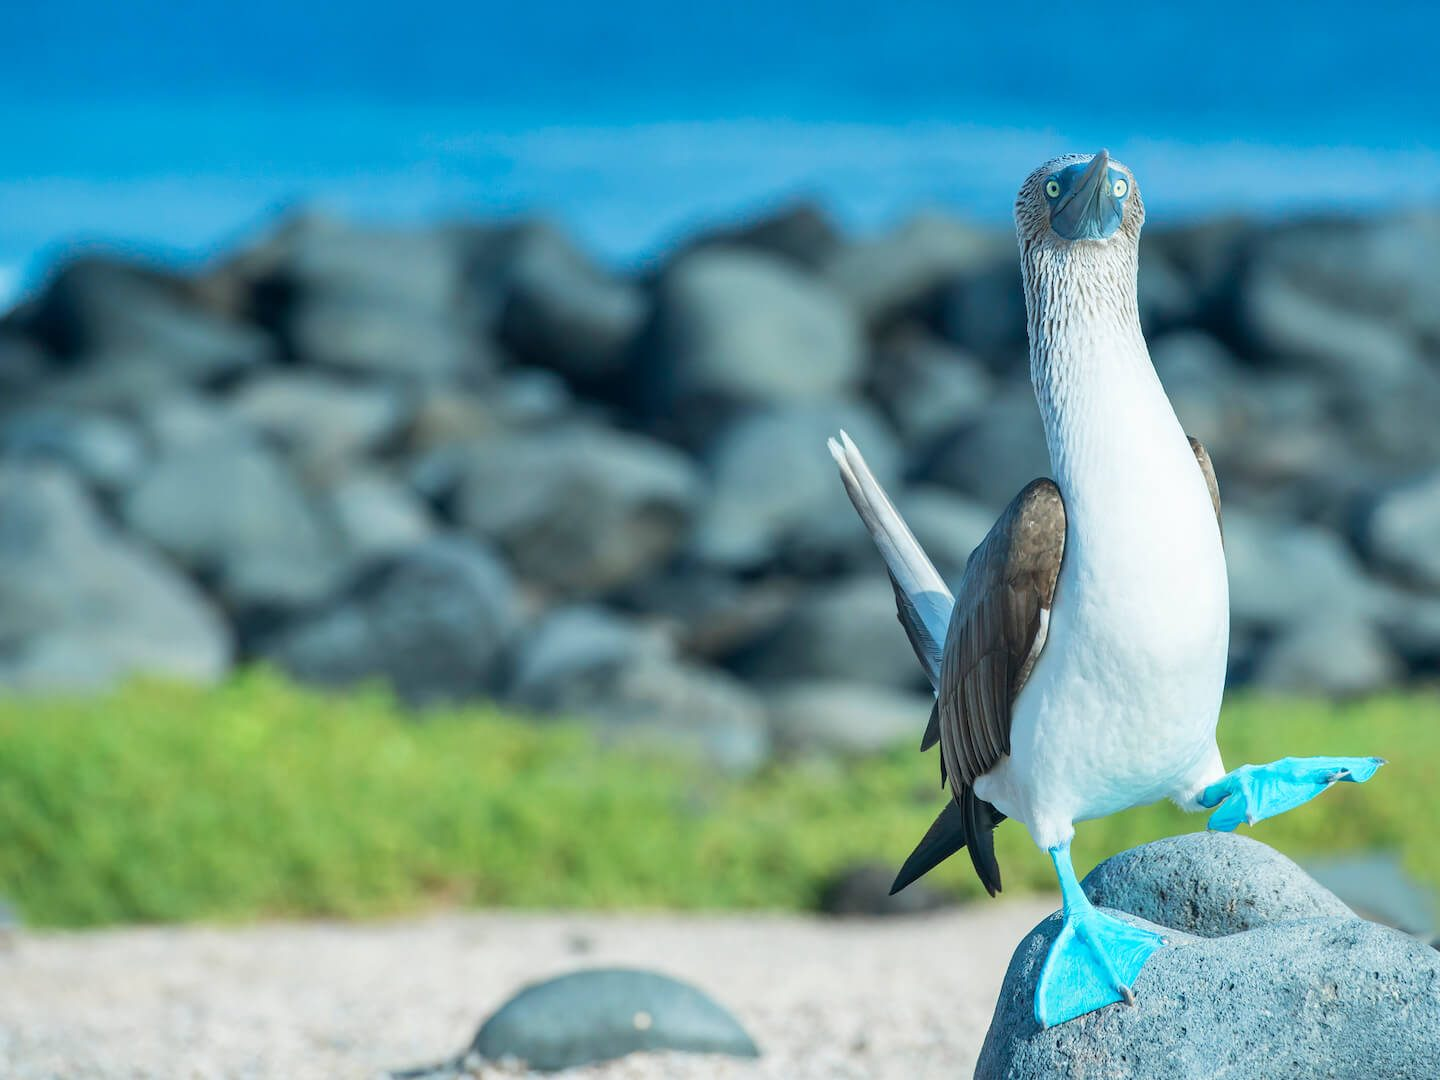 Blue-footed booby in the Galapagos Islands